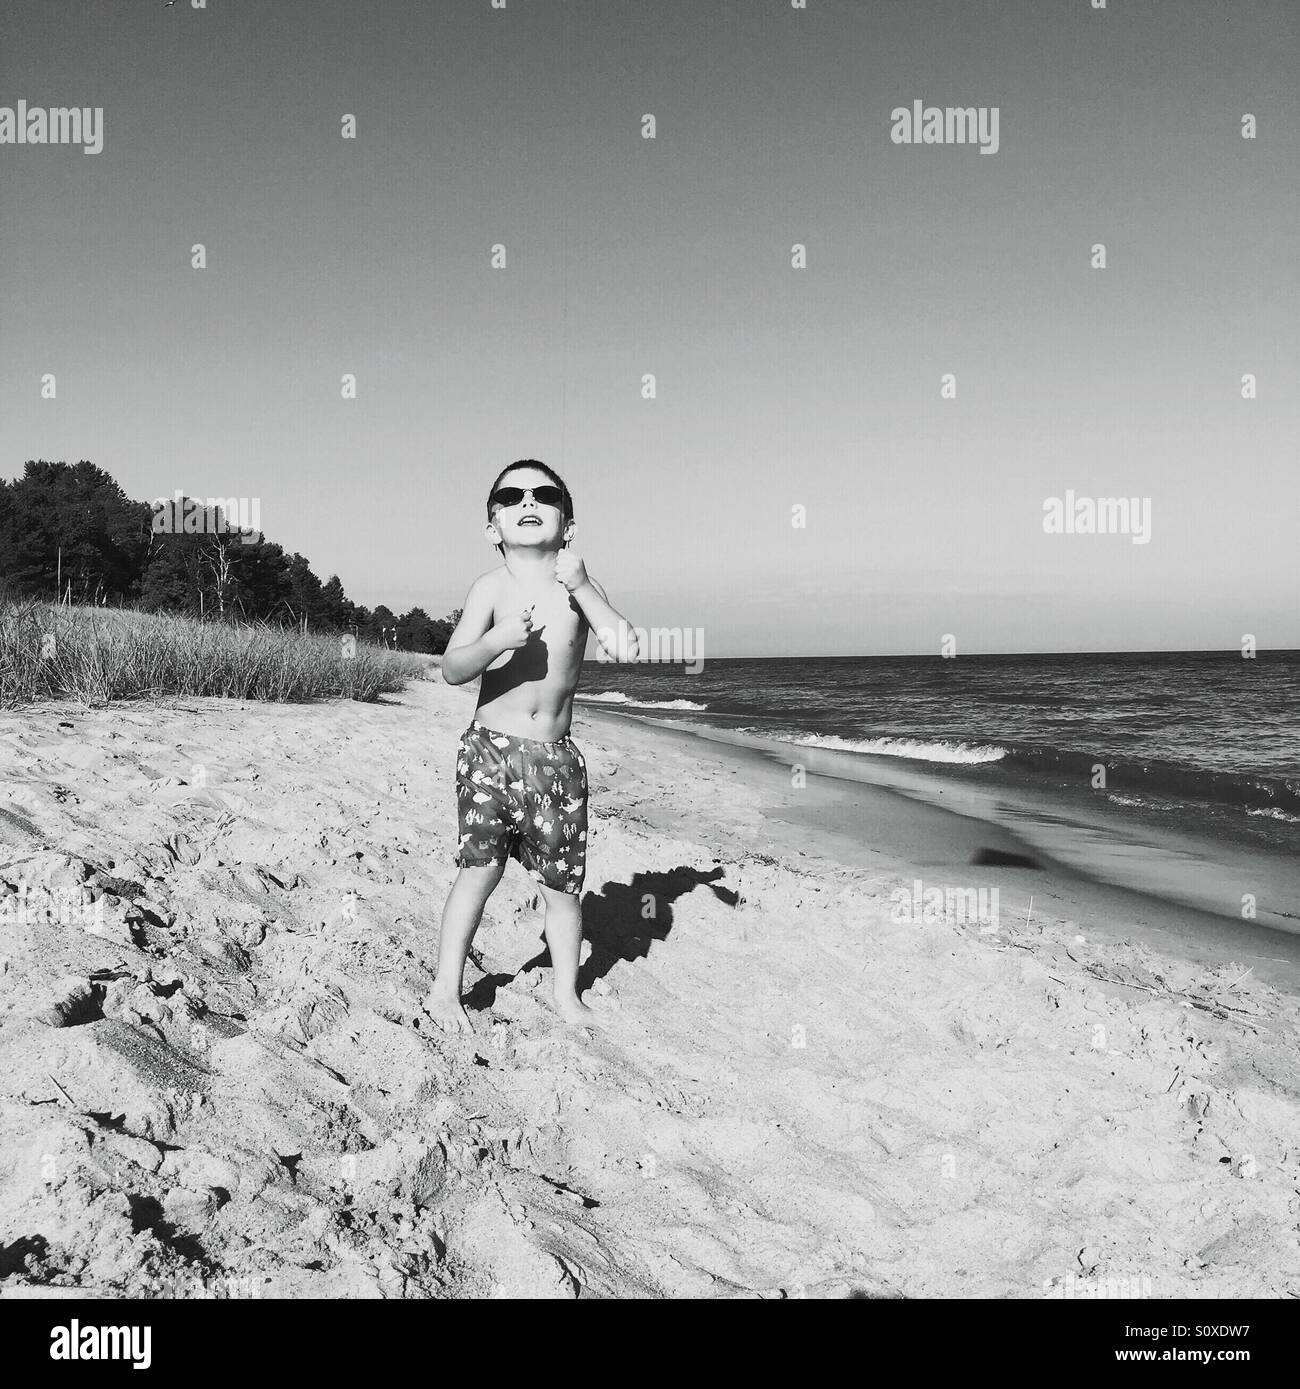 Back and white image of a young boy wearing sunglasses flying a kite on the beach. - Stock Image